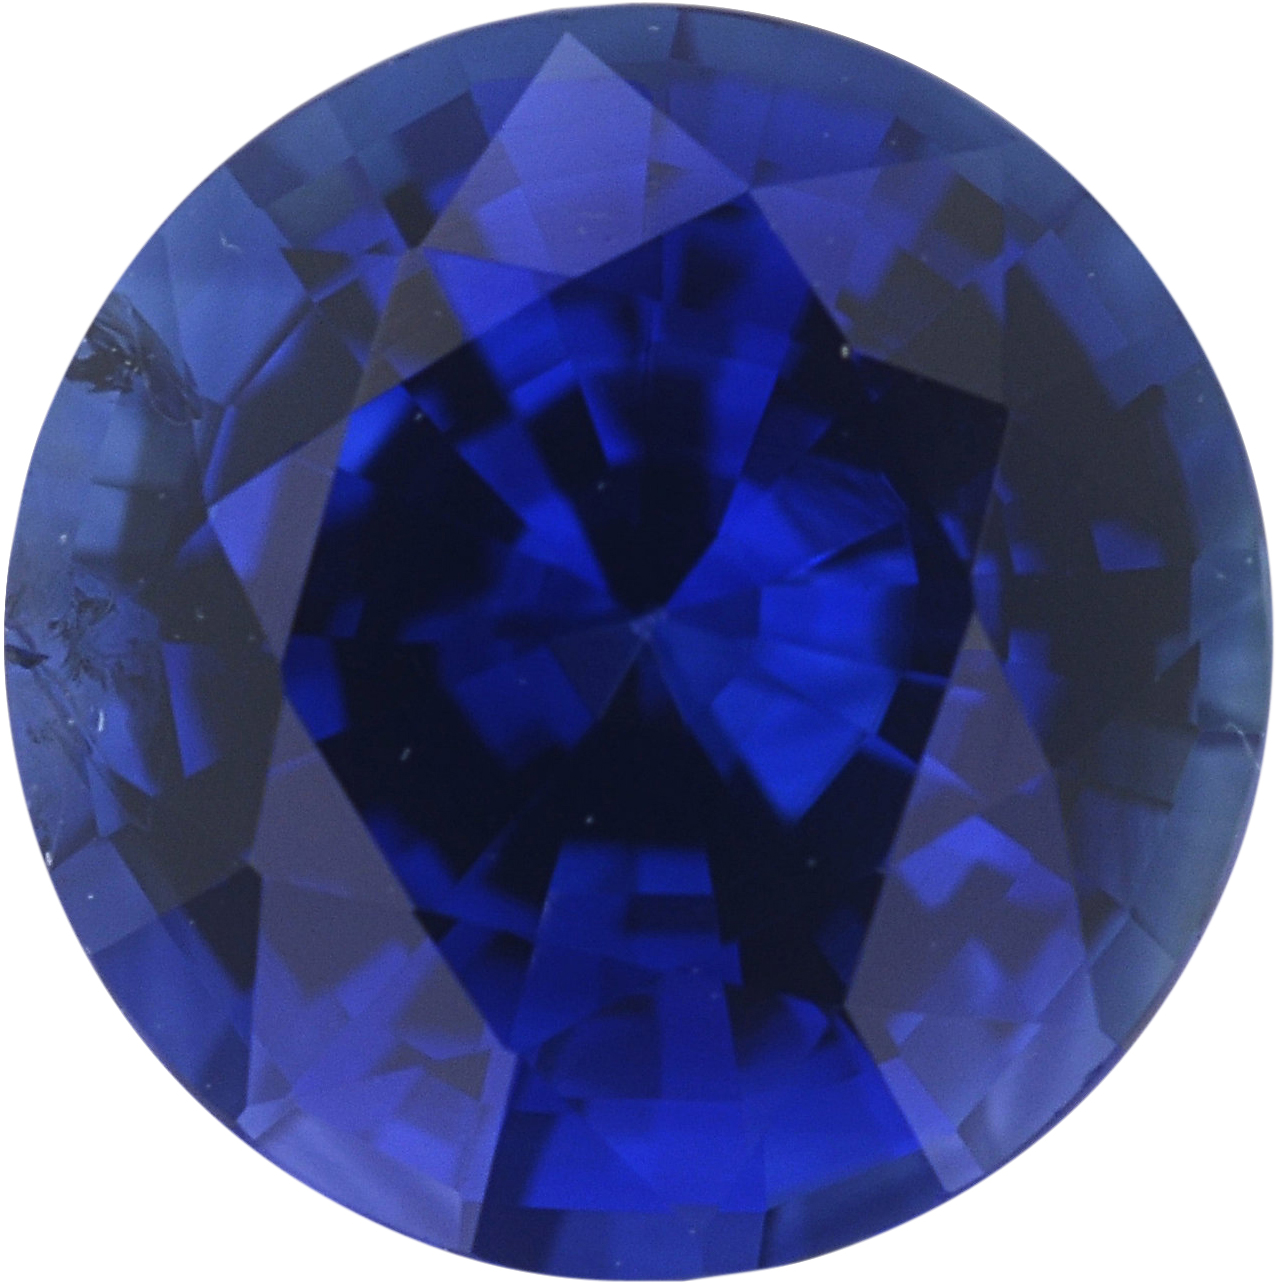 1.12 carats Blue Loose Sapphire Gemstone in Round Cut, 6.08 mm